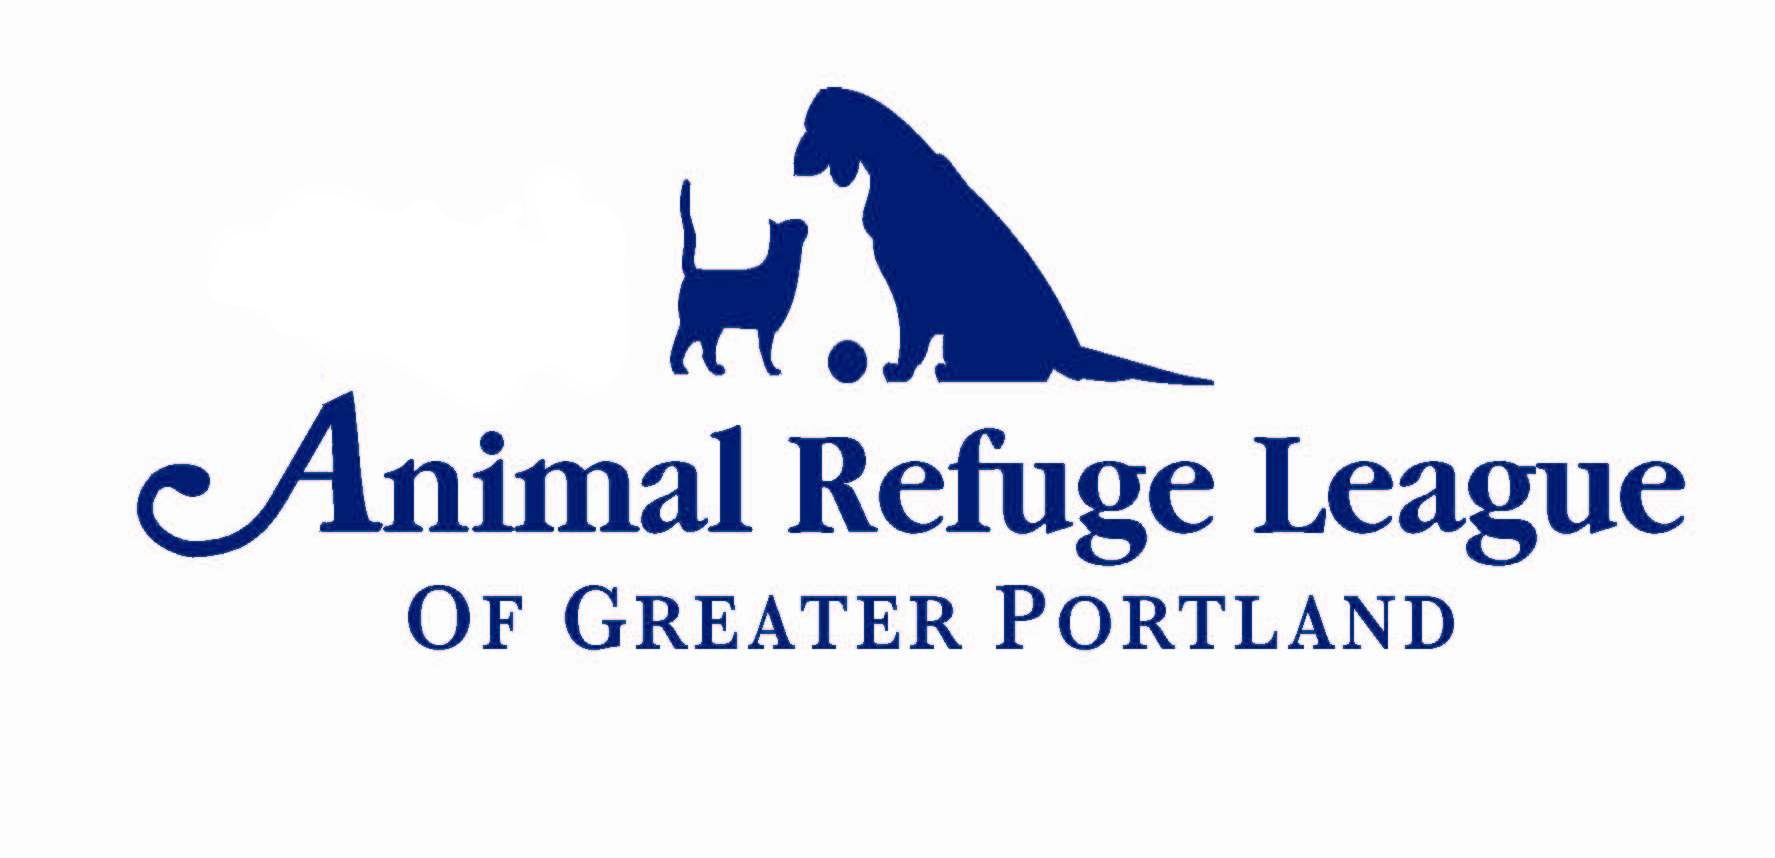 Animal Refuge League of Greater Portland